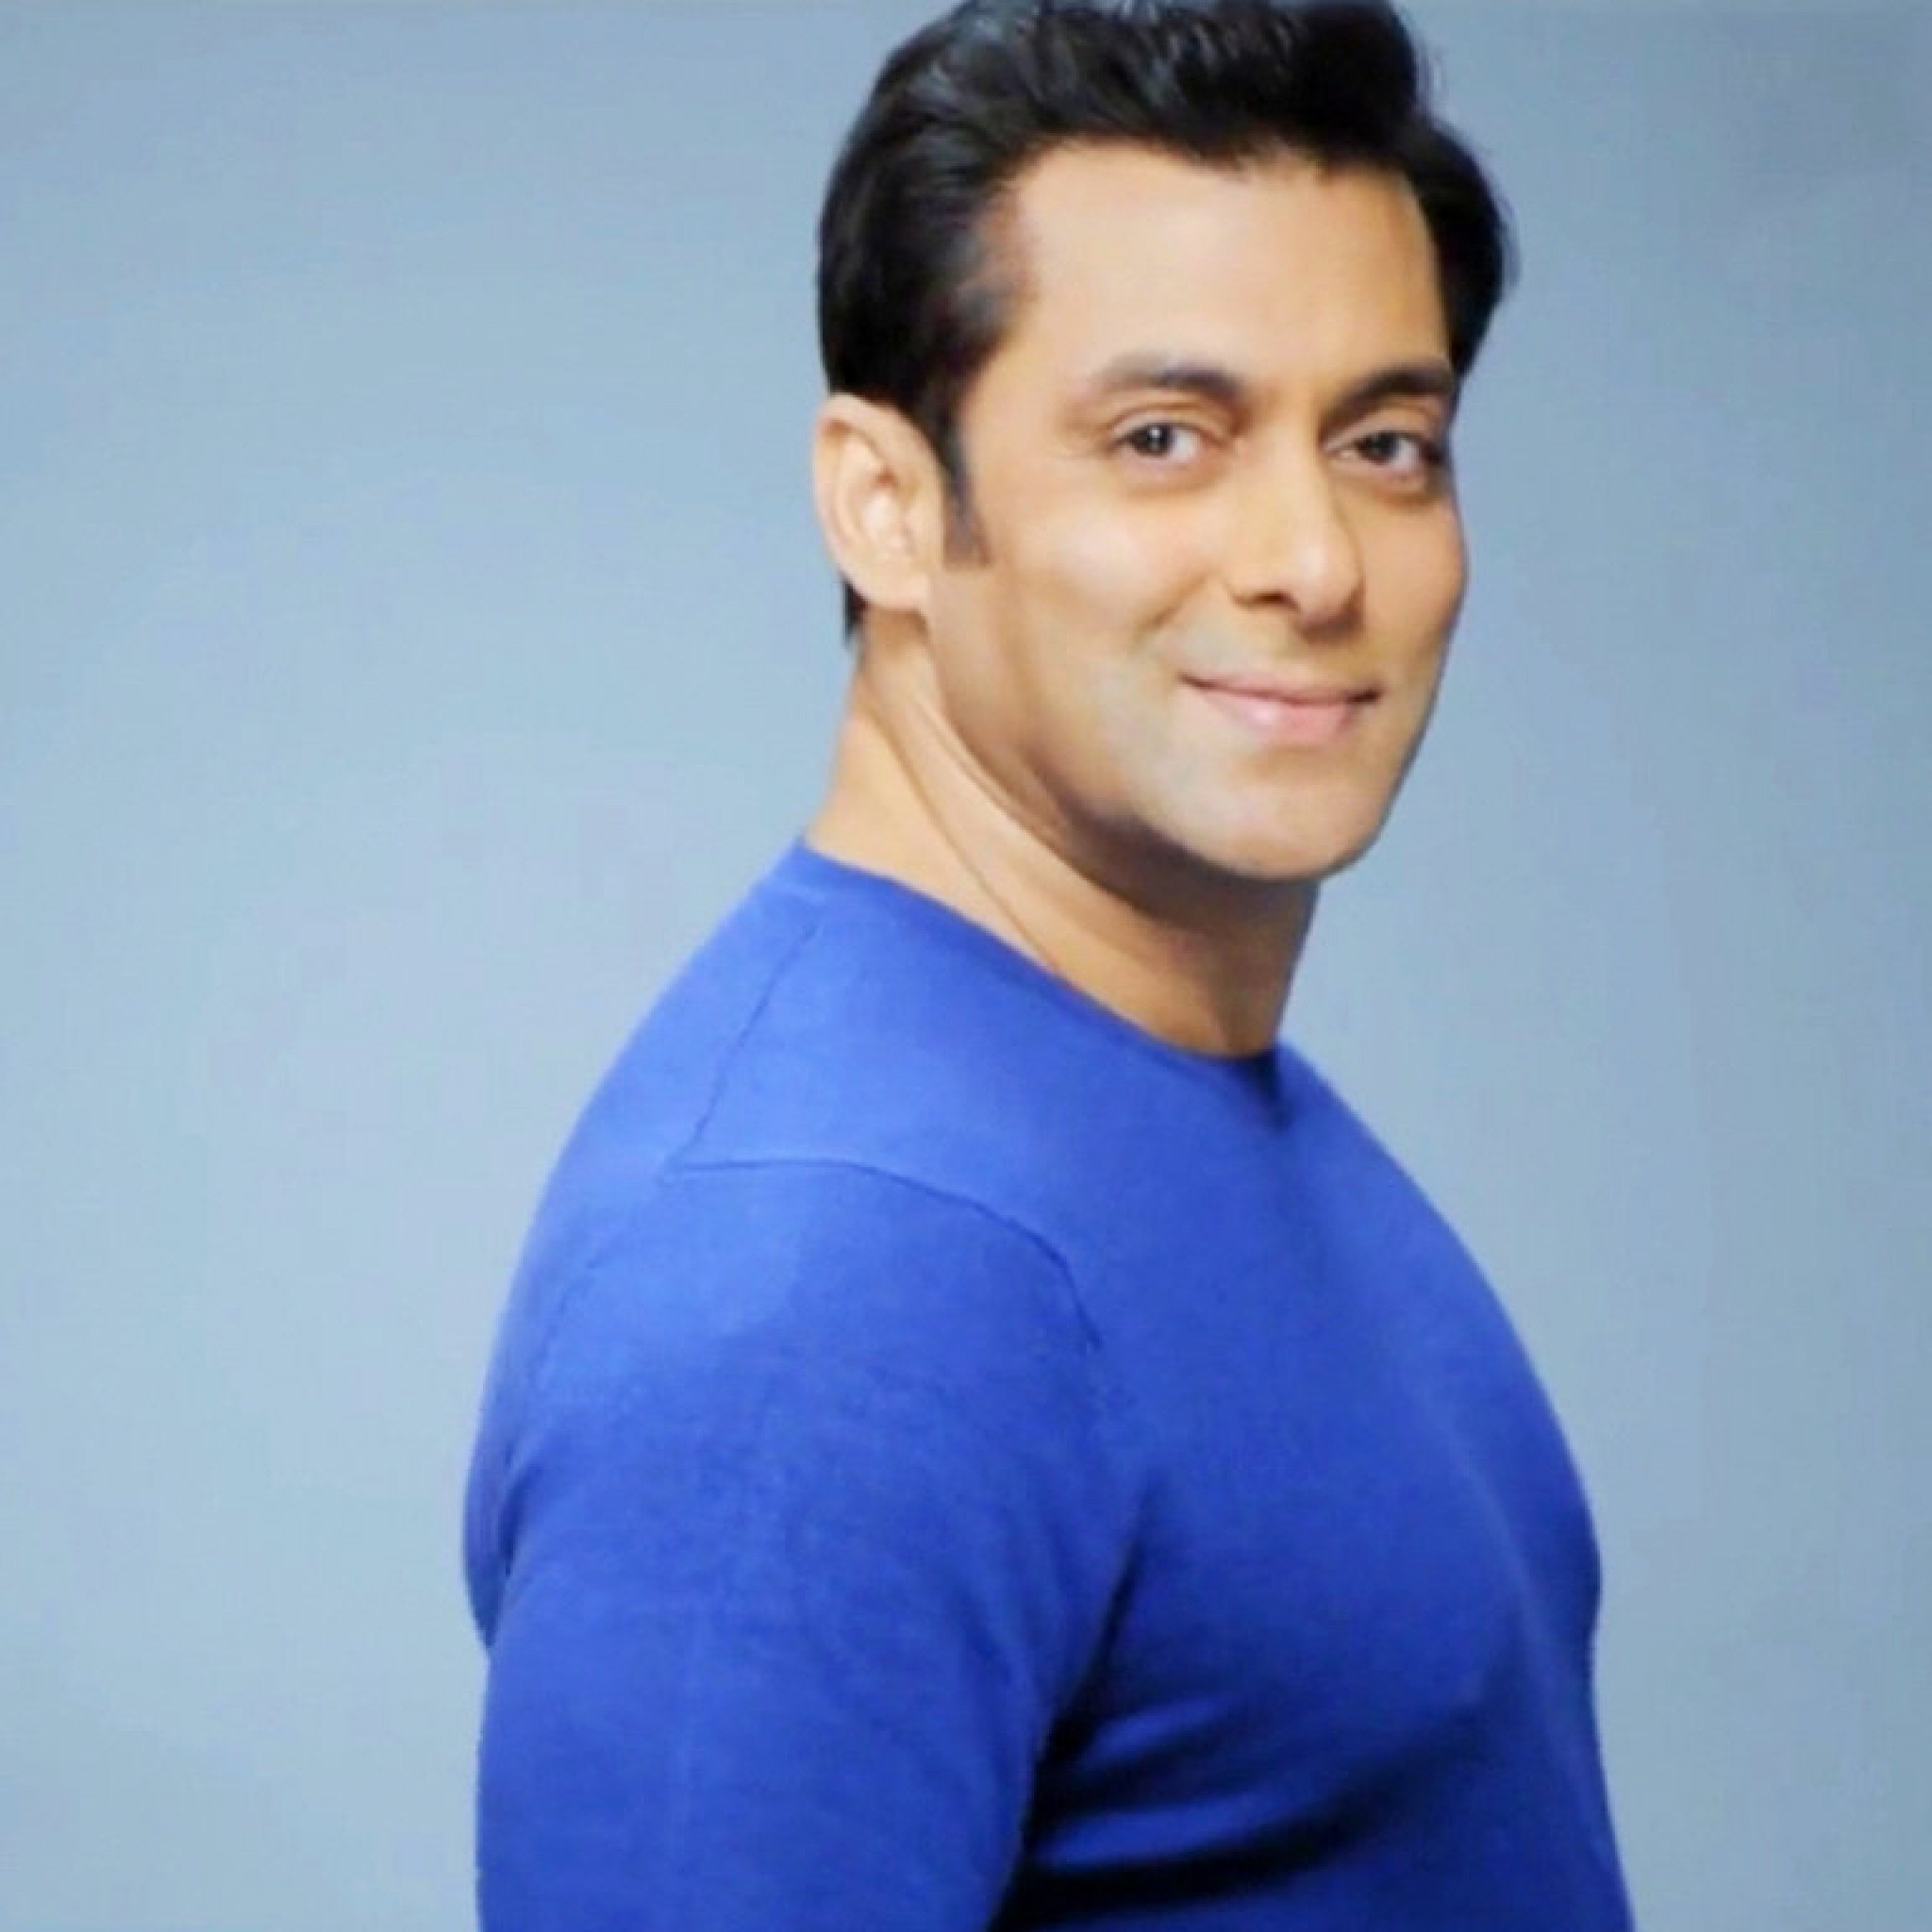 Salman Khan Prem Ratan Dhan Payo Photos Images Hd Wallpaper